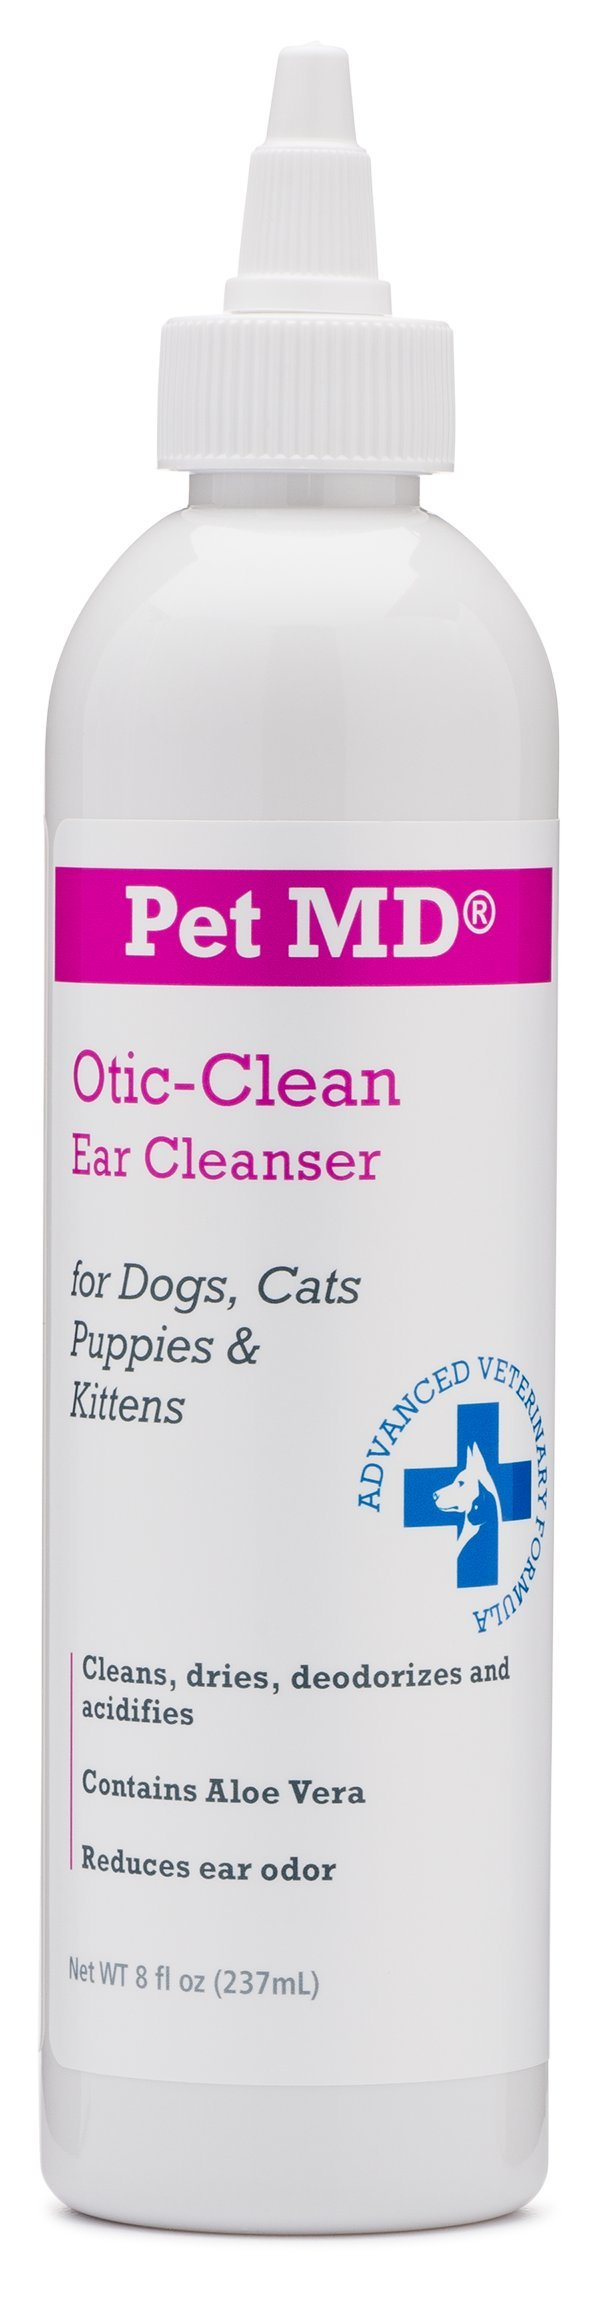 Pet MD Otic Clean Dog Ear Cleaner for Cats and Dogs - Effective Against Infections Caused by Mites, Yeast, Itching and Controls Odor - 8 oz